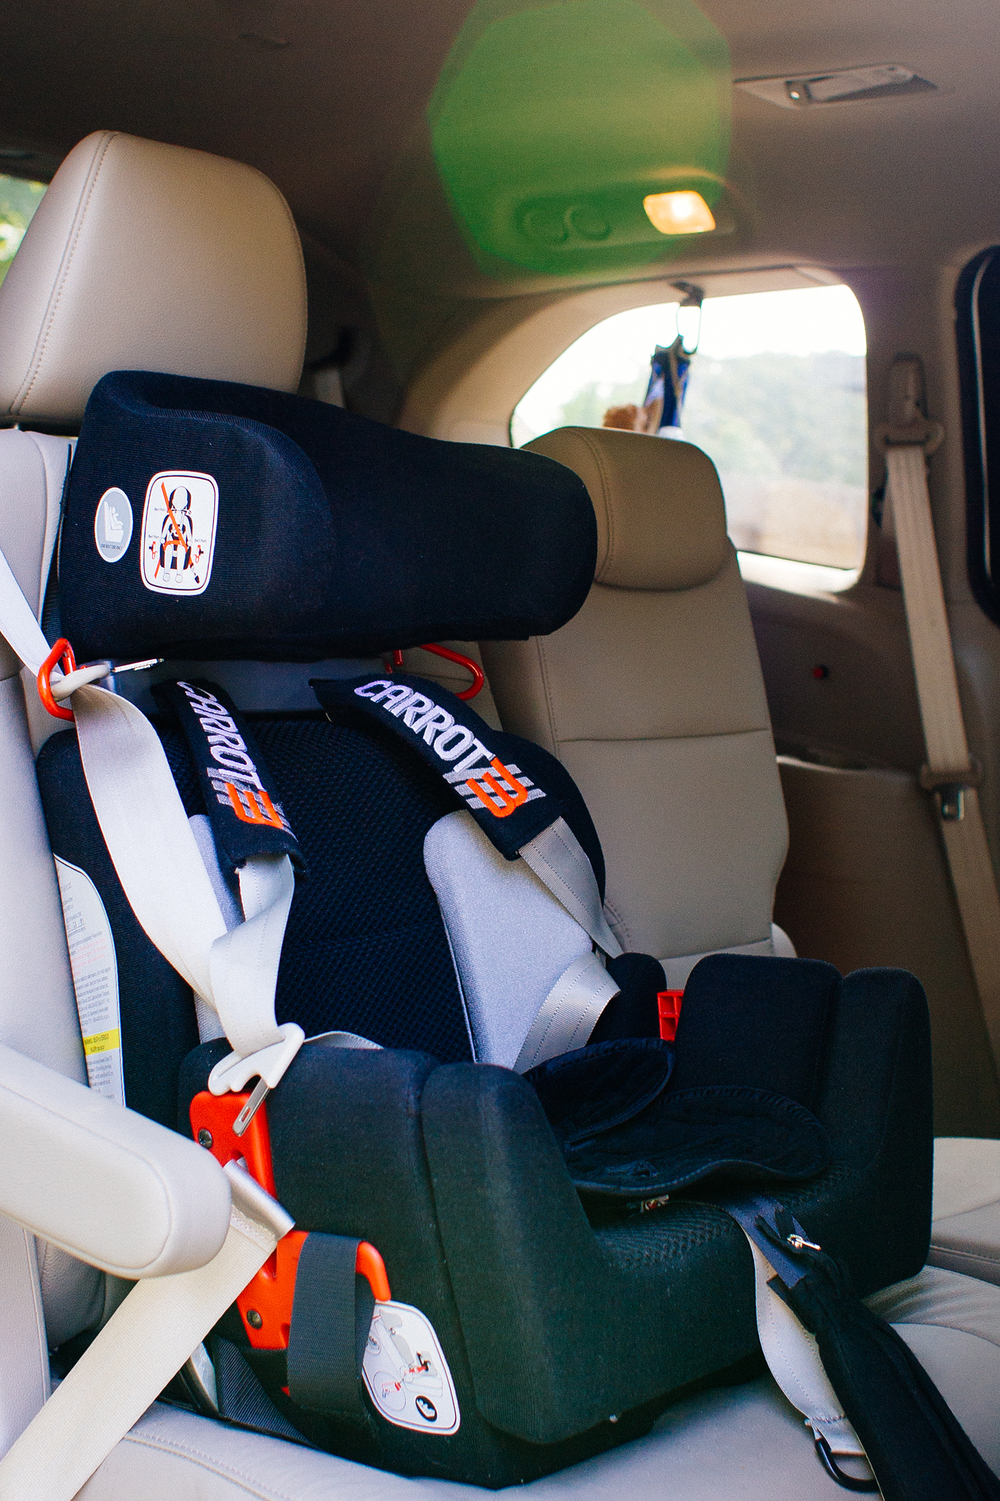 Carrot 3 Special Needs Car Seat